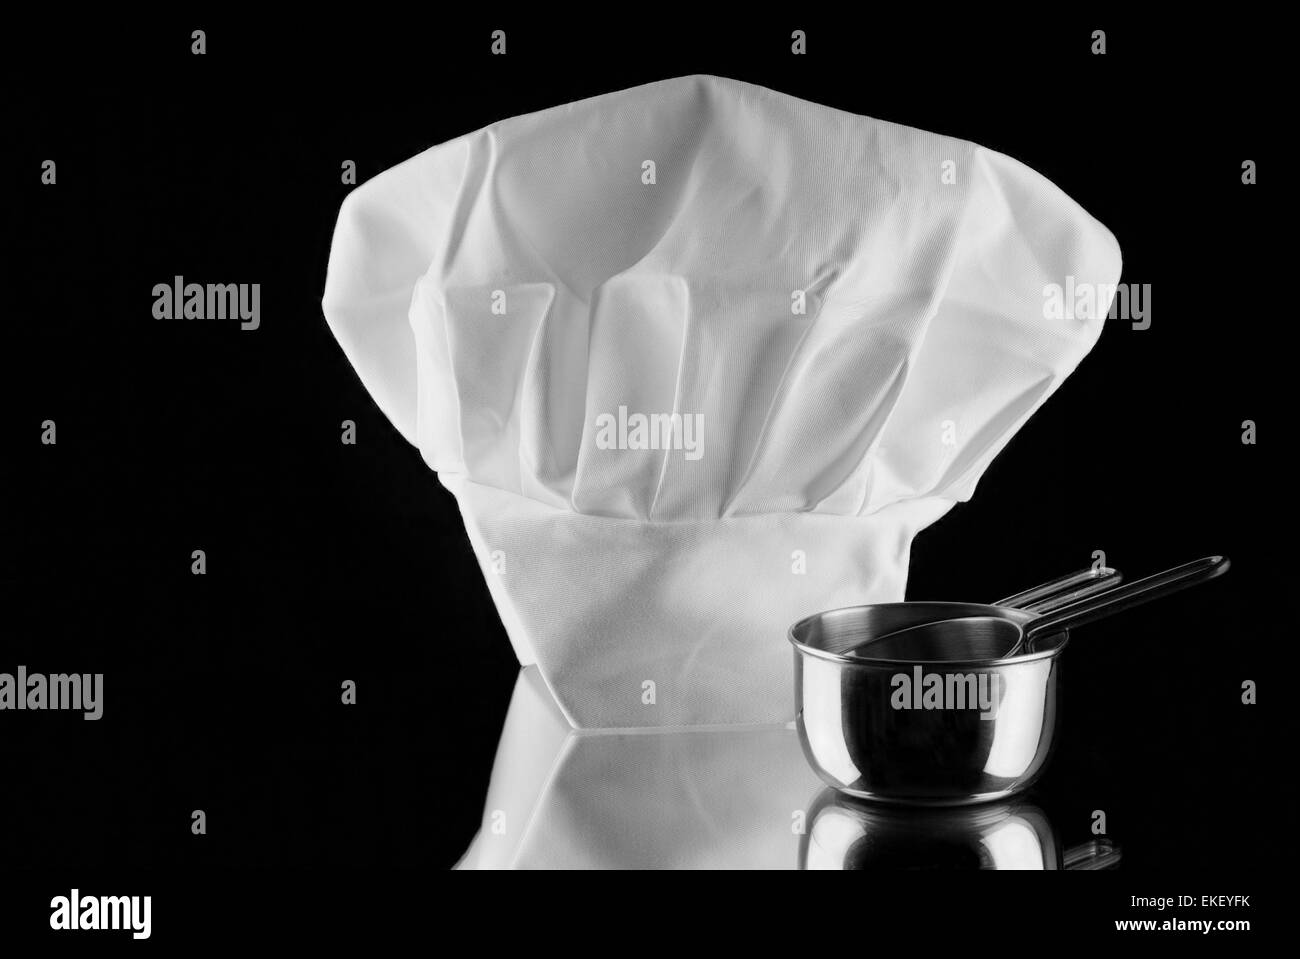 White chef's hat with measuring cup - Stock Image